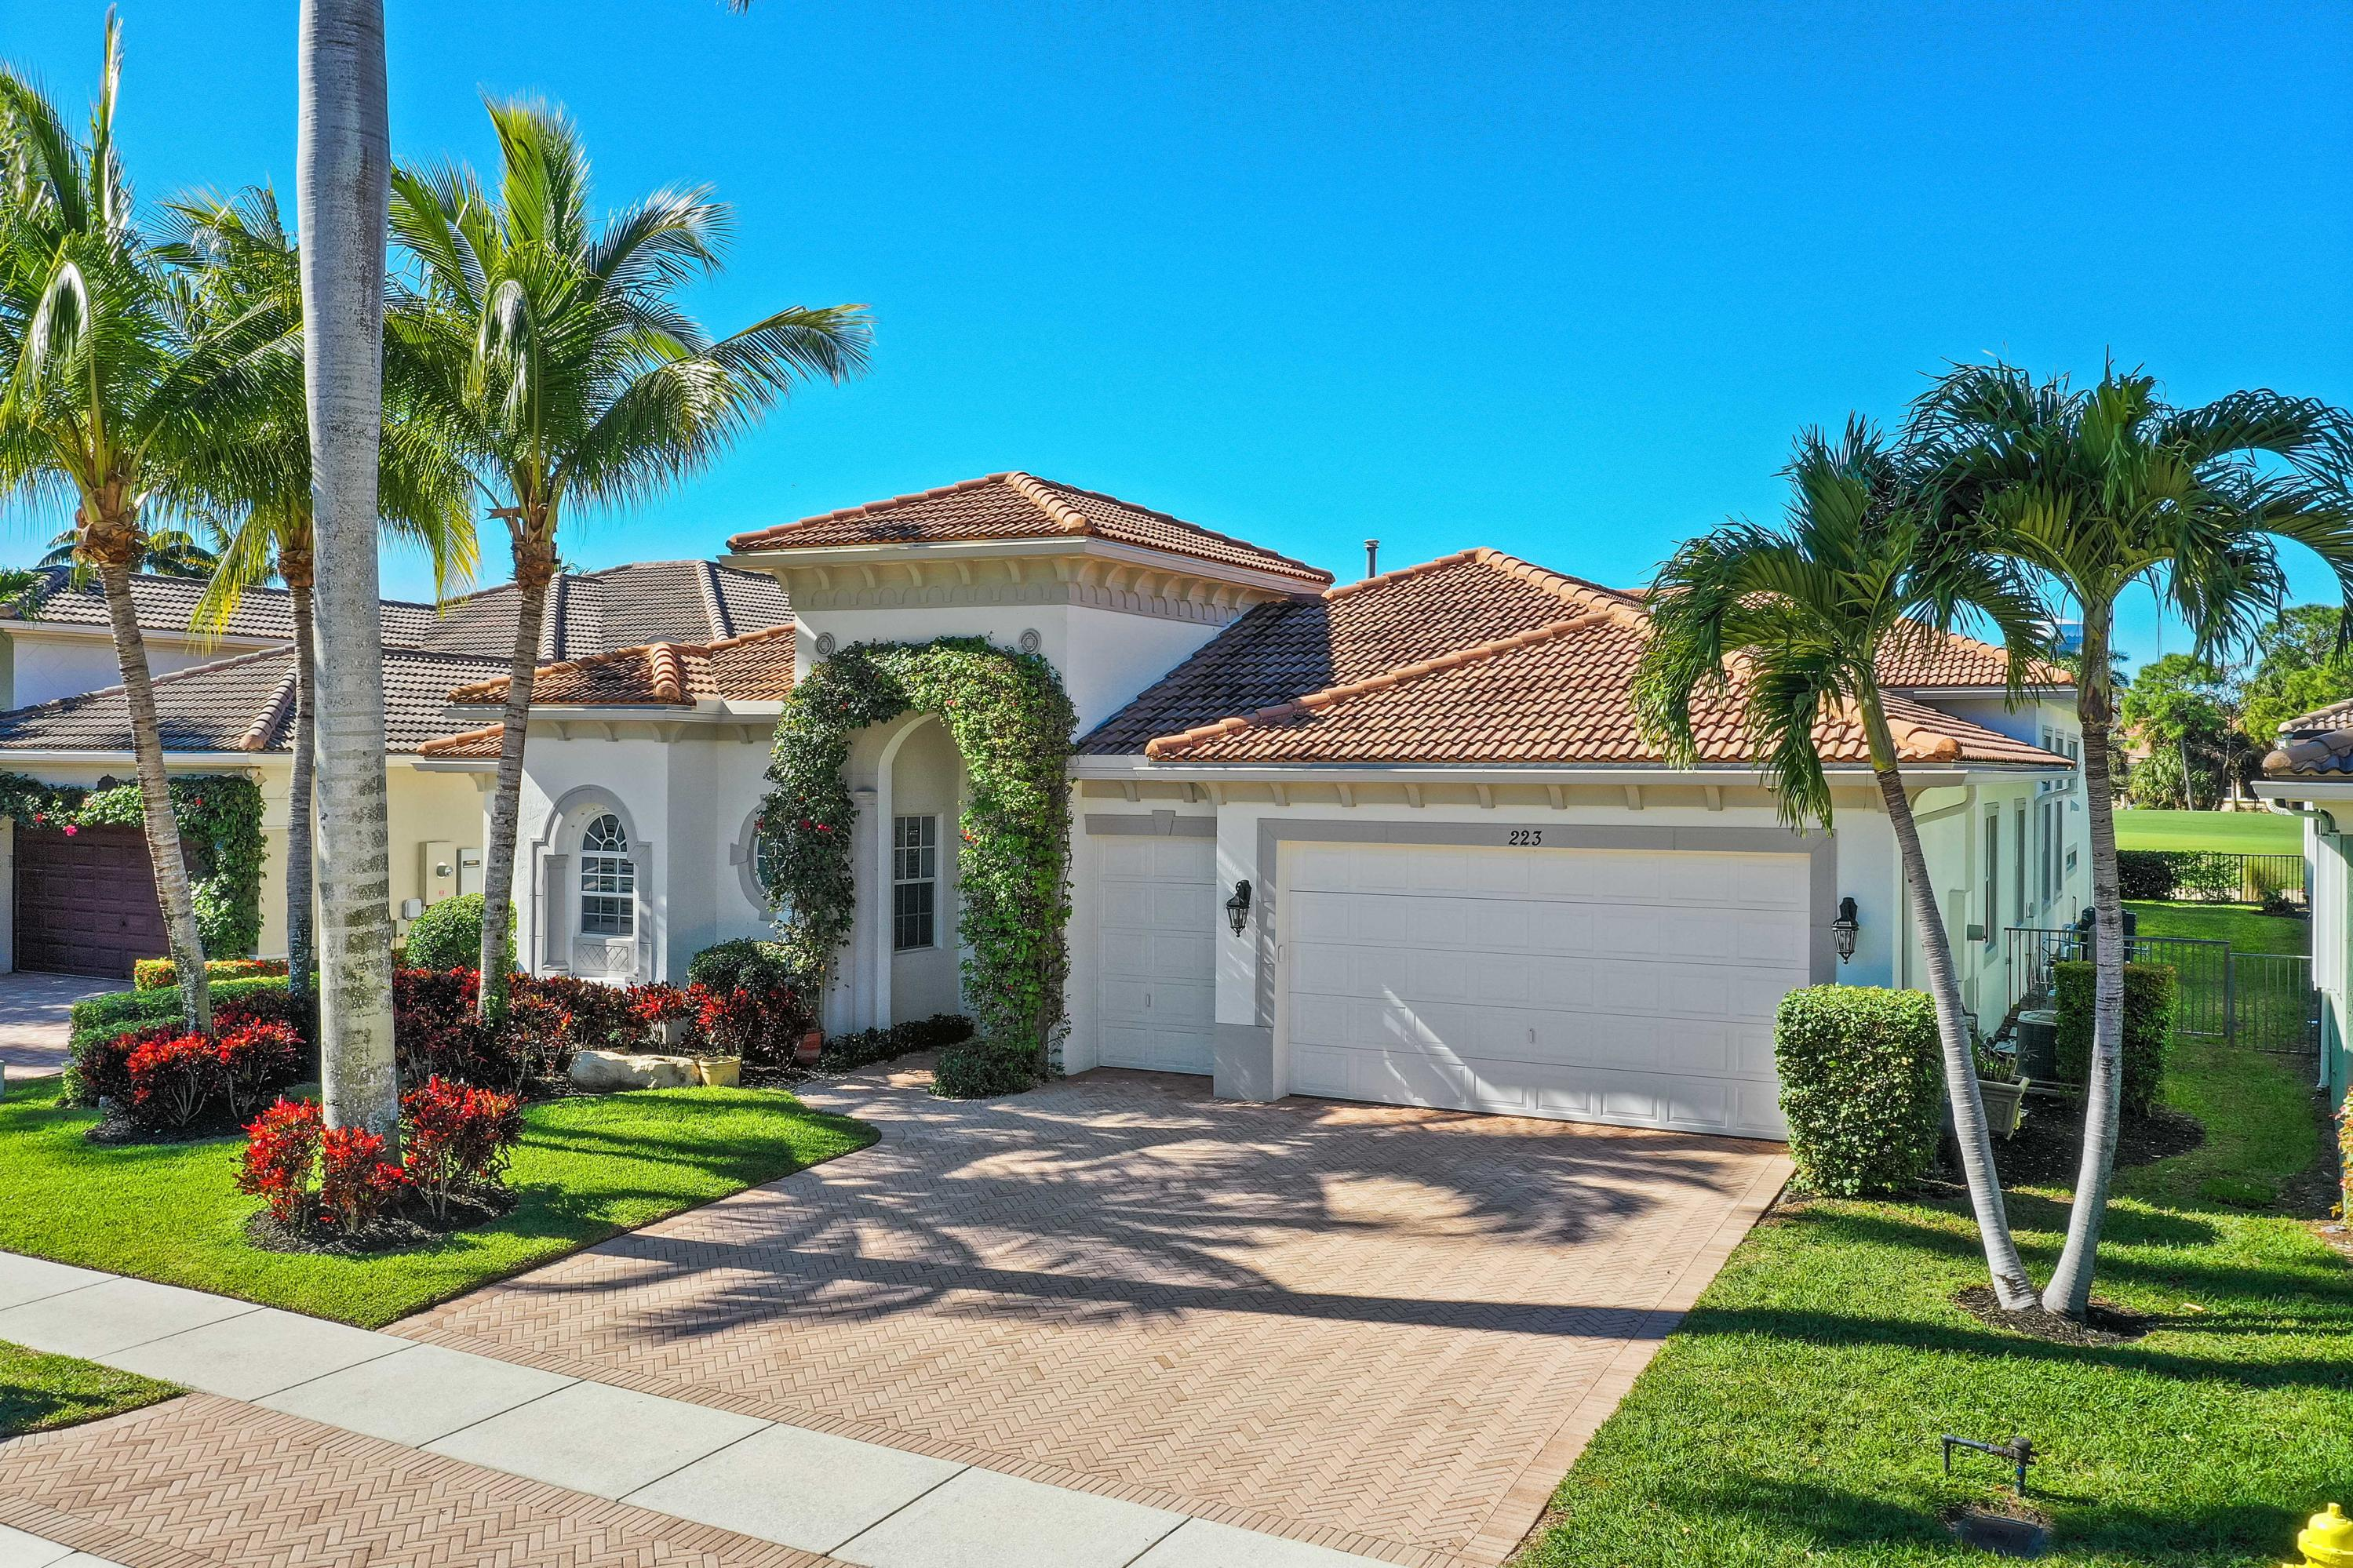 223 Montant Drive, Palm Beach Gardens, Florida 33410, 4 Bedrooms Bedrooms, ,3.1 BathroomsBathrooms,A,Single family,Montant,RX-10501145